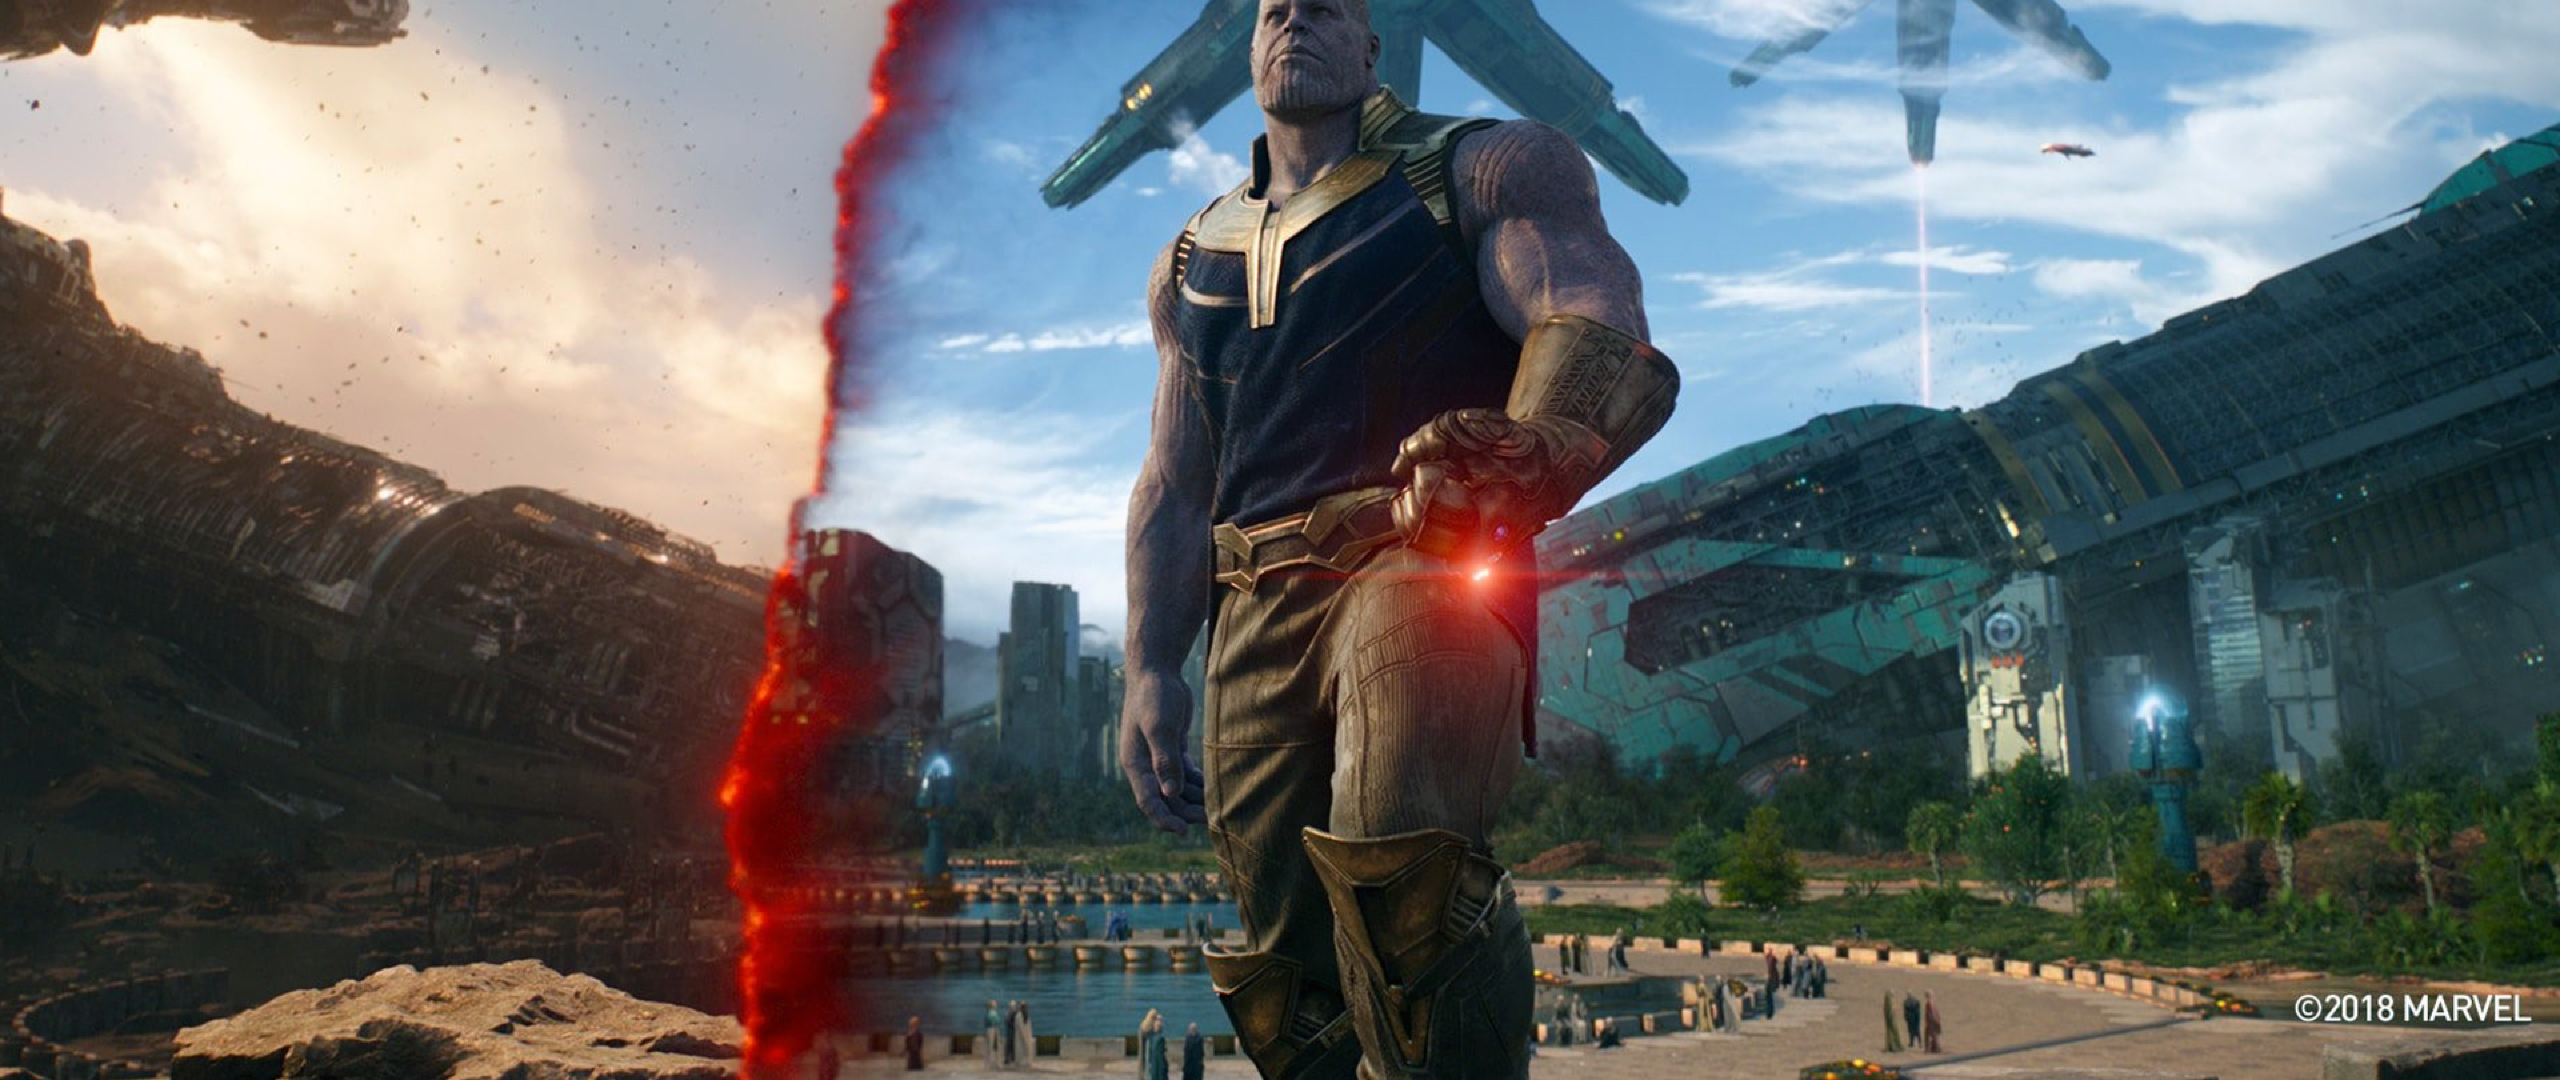 Thanos In Titan Avengers Infinity War, Full HD Wallpaper